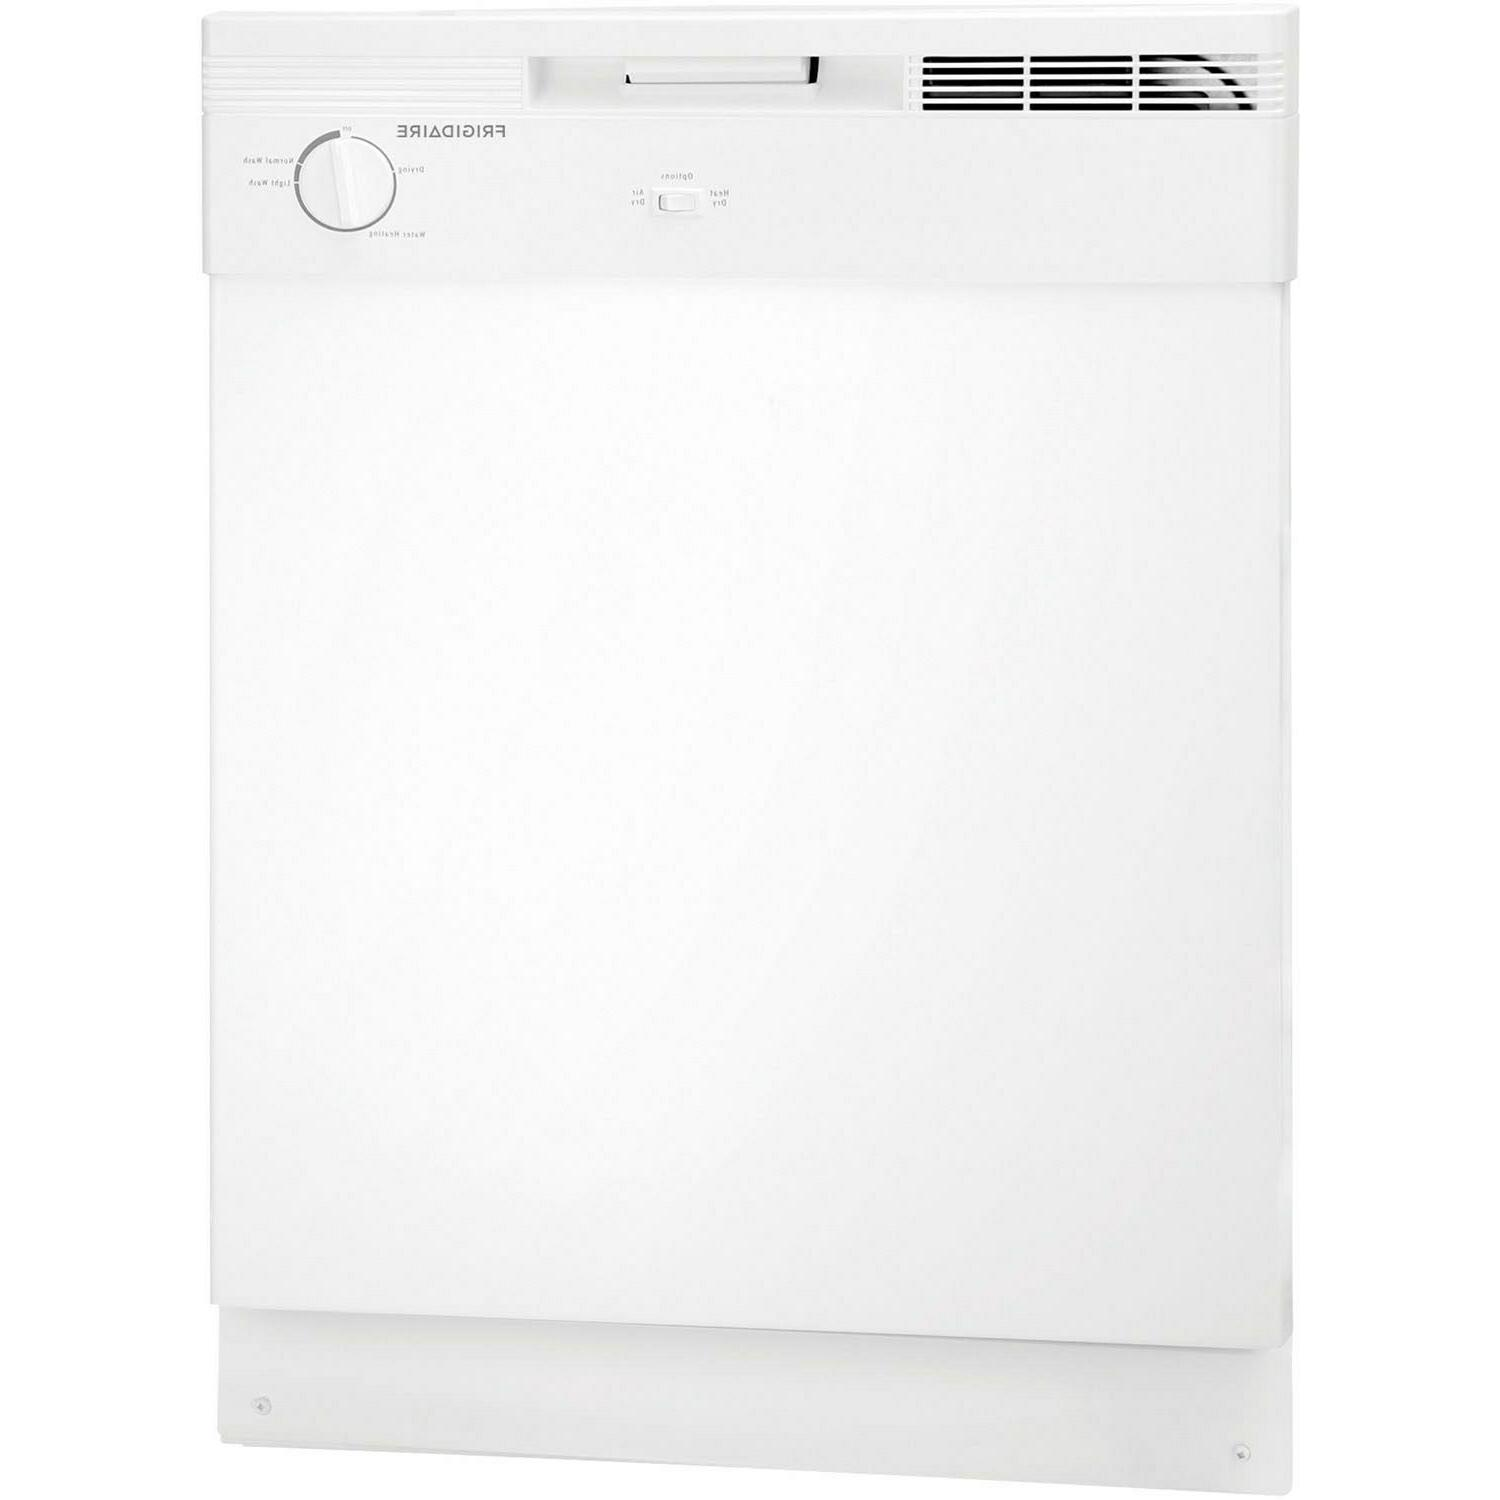 fbd2400kw white 24 built in dishwasher tall